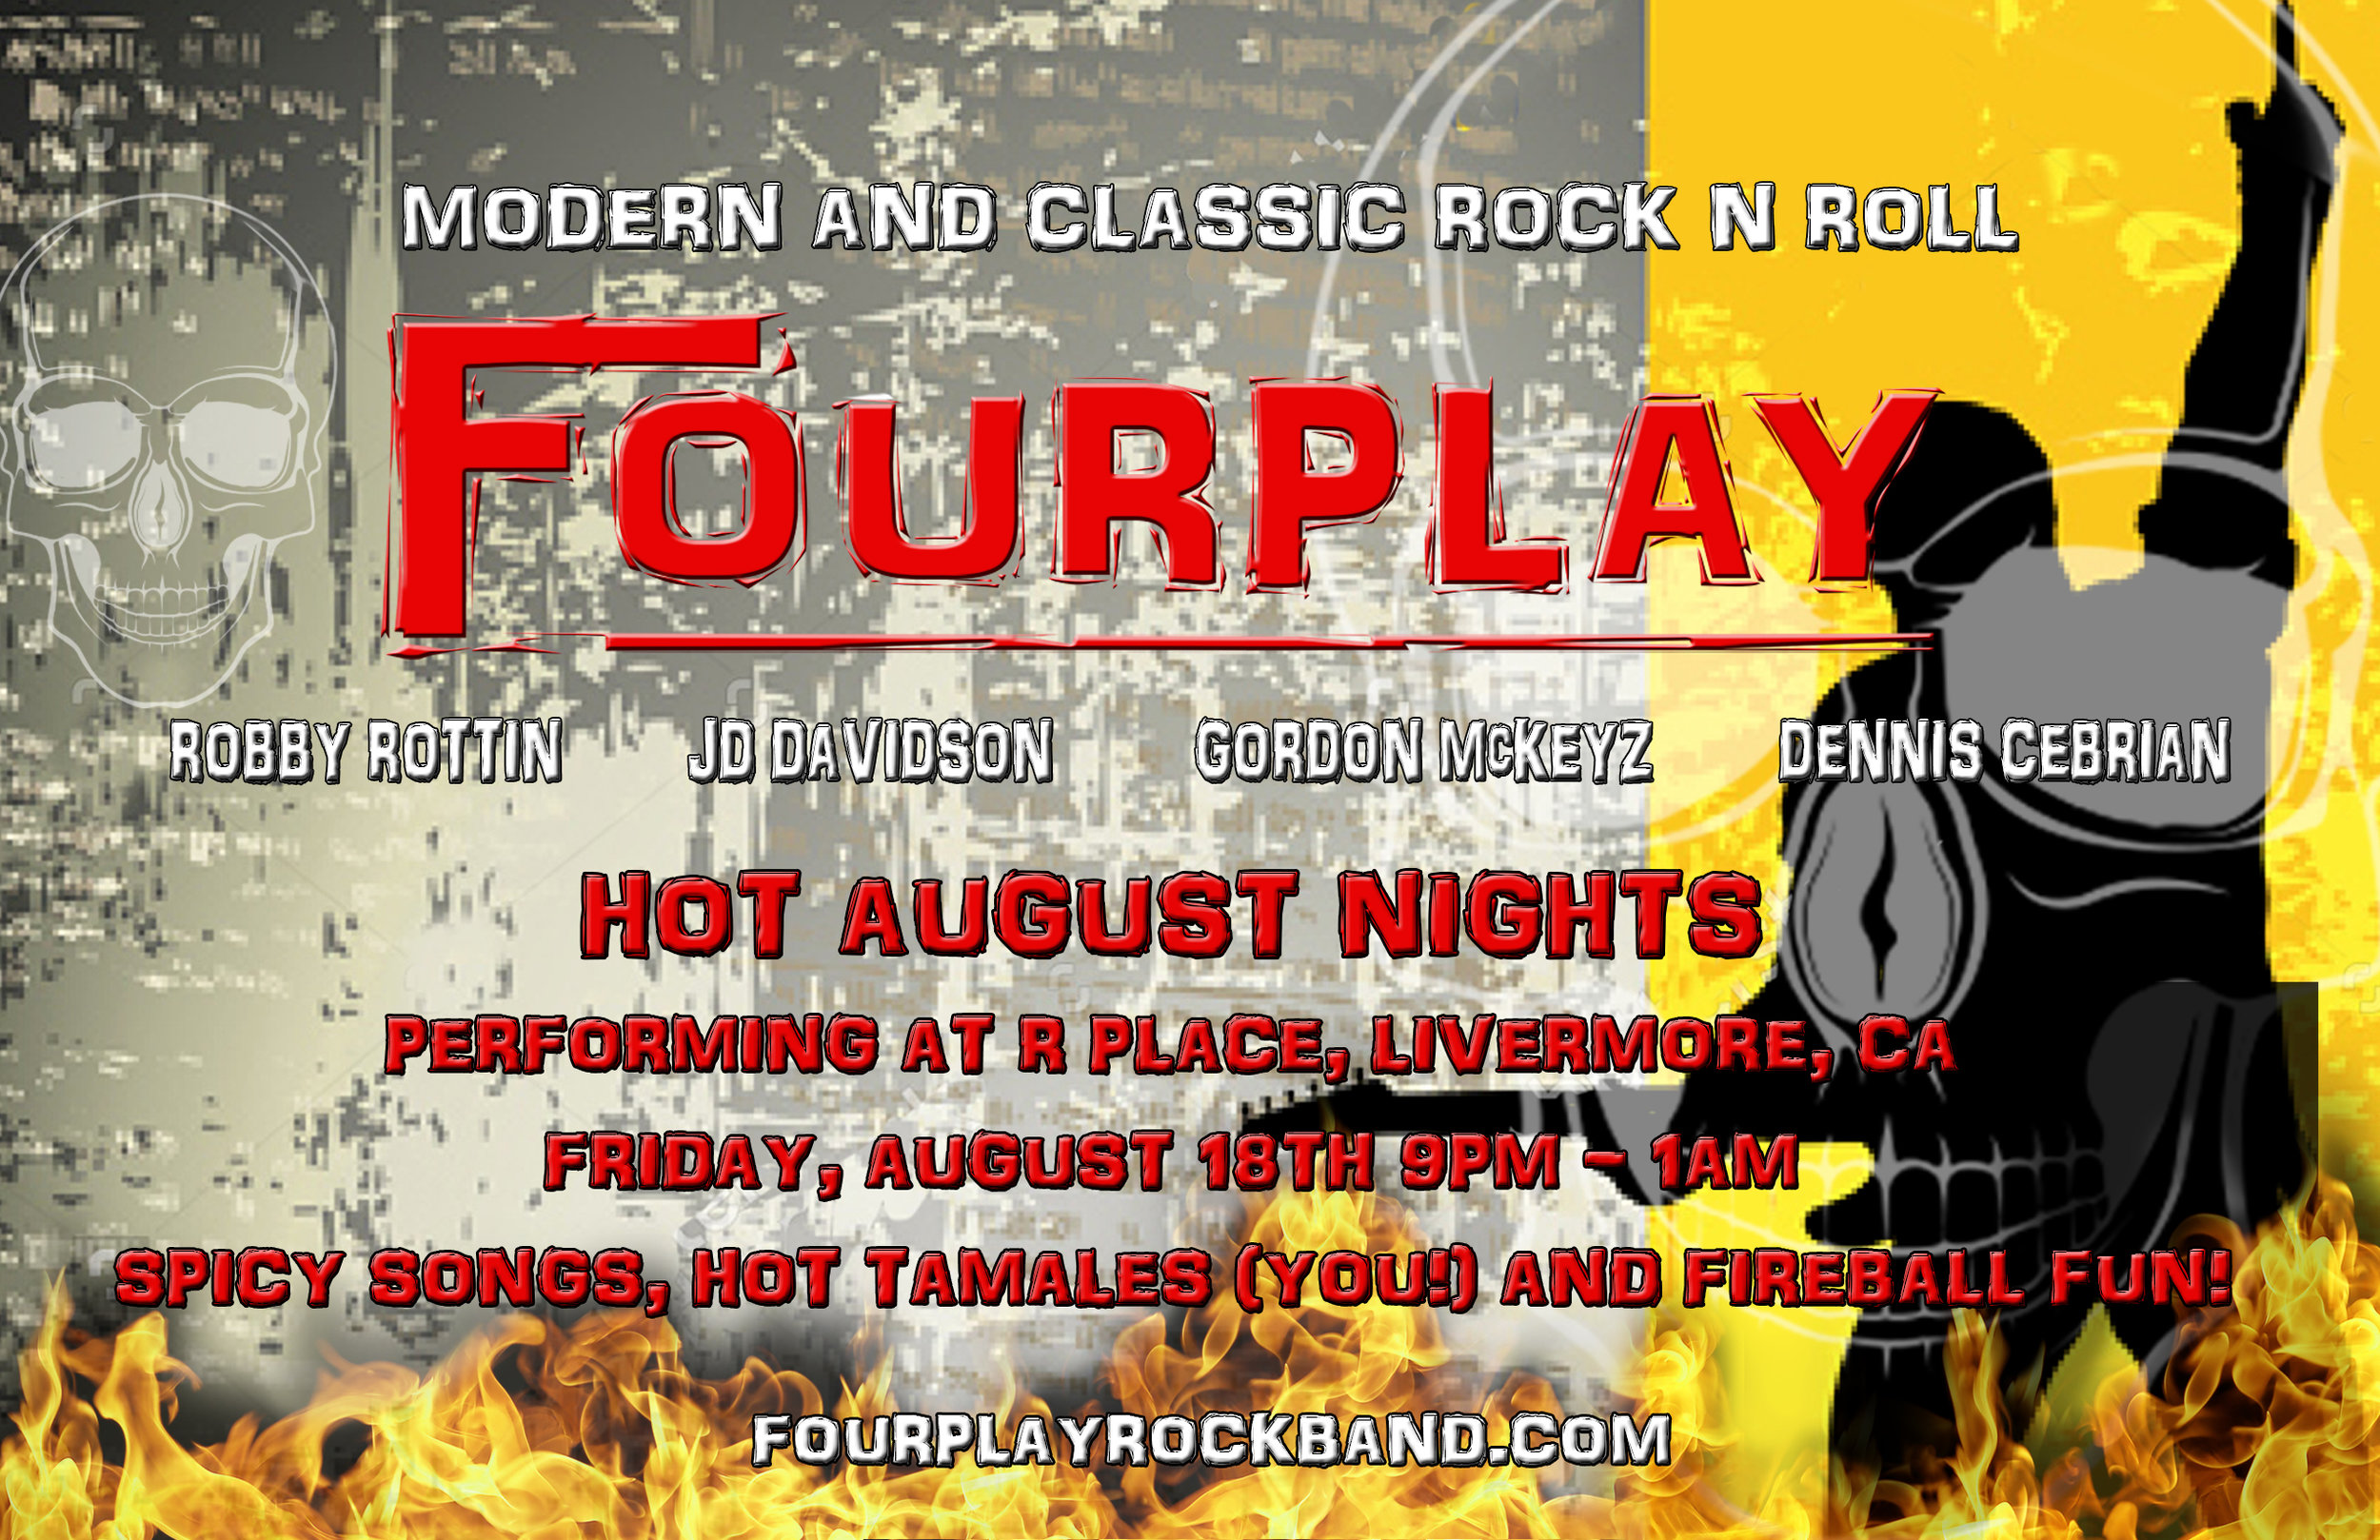 FOURPLAY_FLYER_8-18-17.jpg